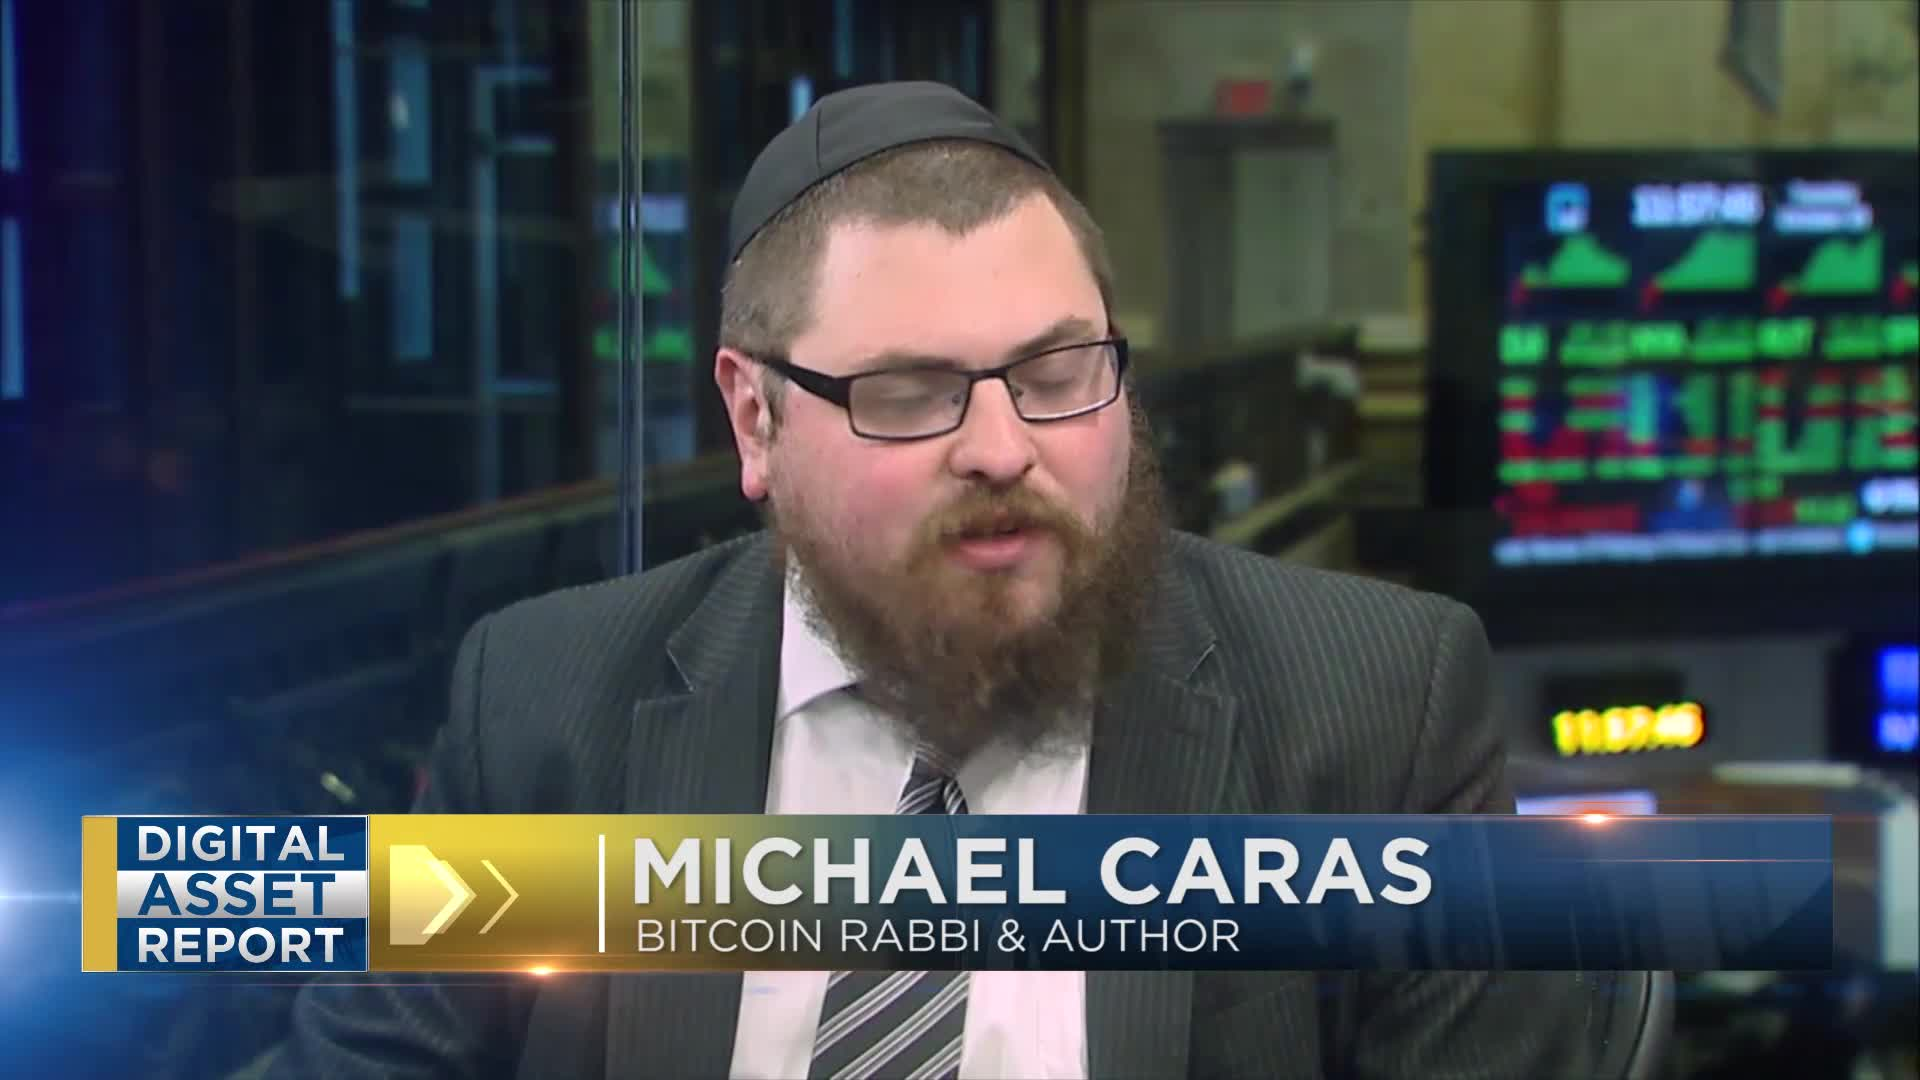 MICHAEL_CARAC_THE-BITCOIN_RABBI.mp4